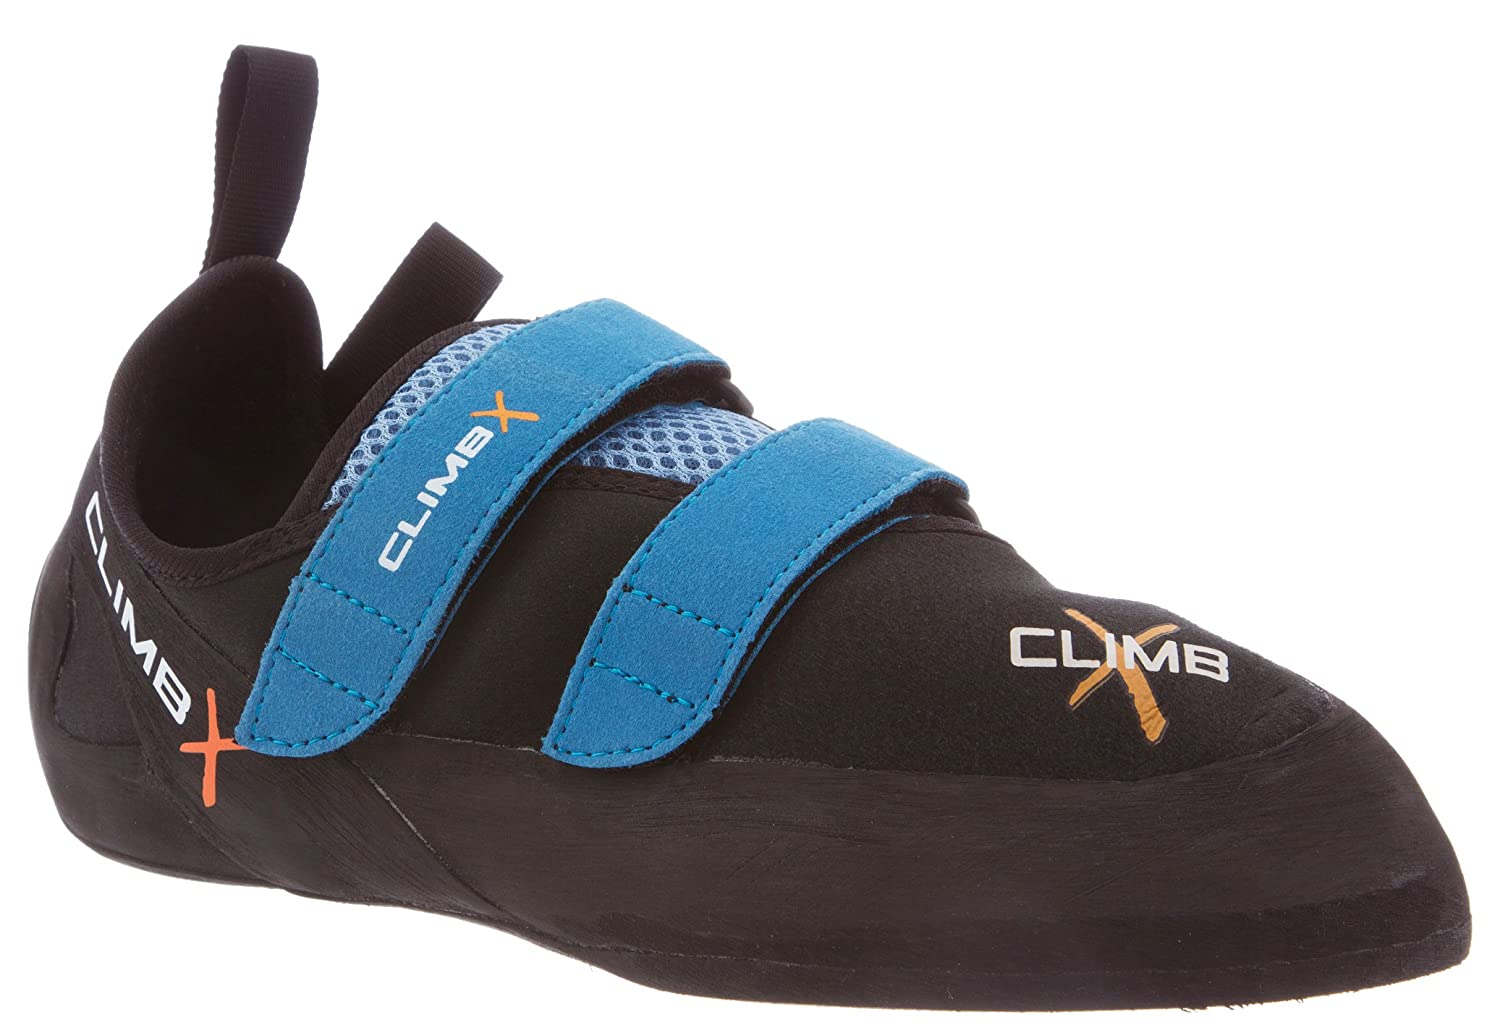 Climb X Icon Climbing Shoe with Free Sickle M-16 Climbing Brush